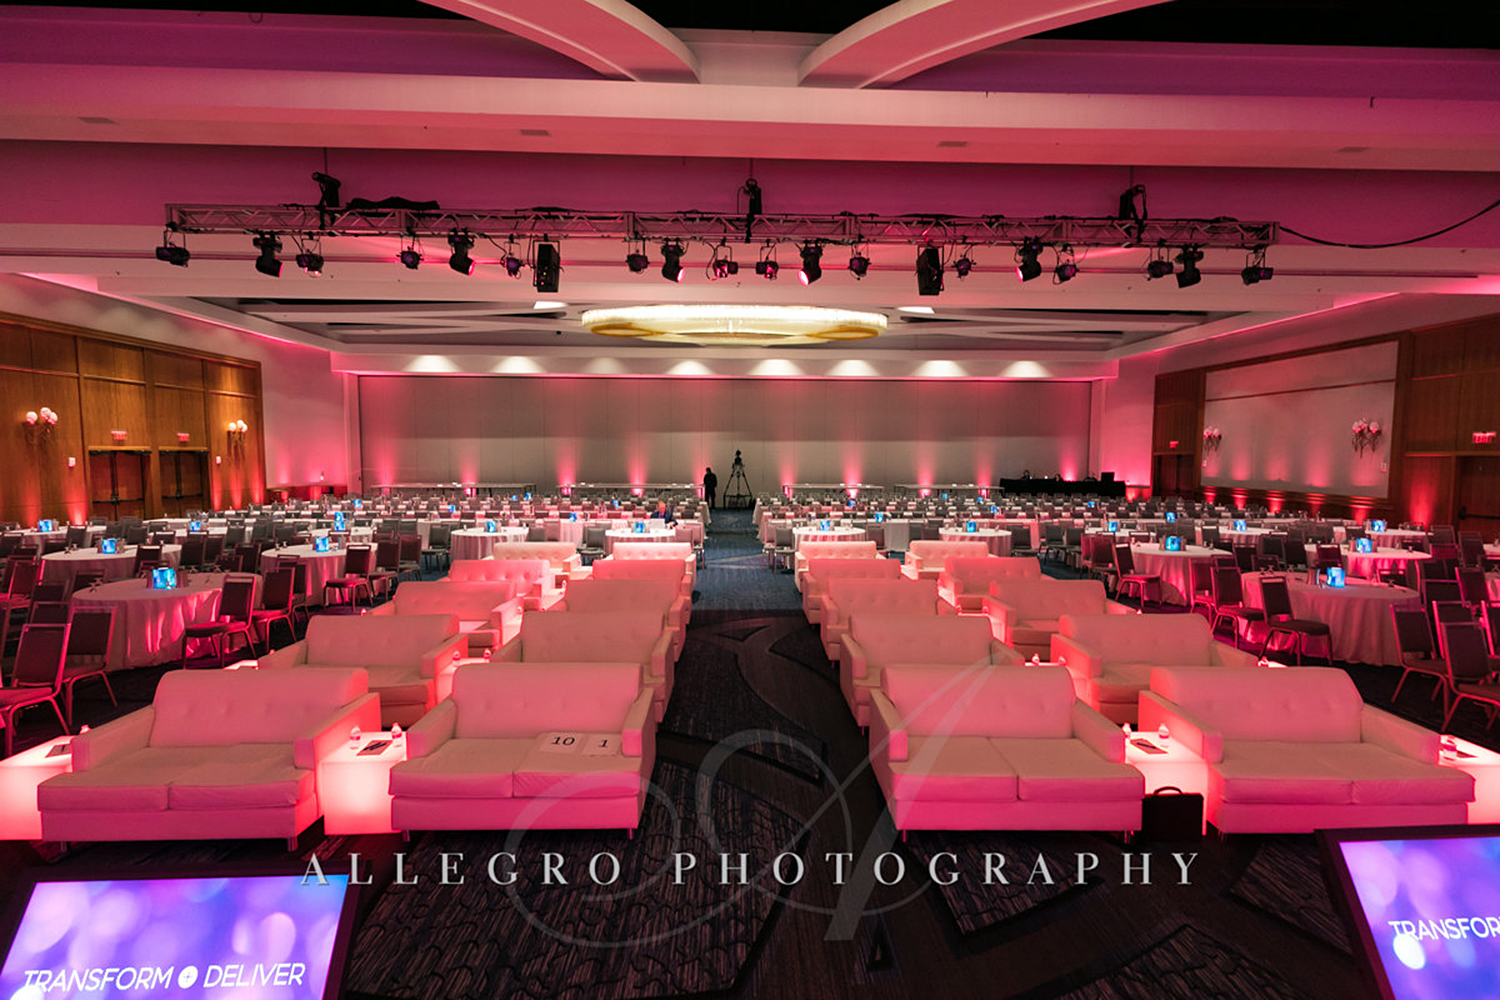 06_Corporate Meetings Conference Stage View_AE Events.jpg